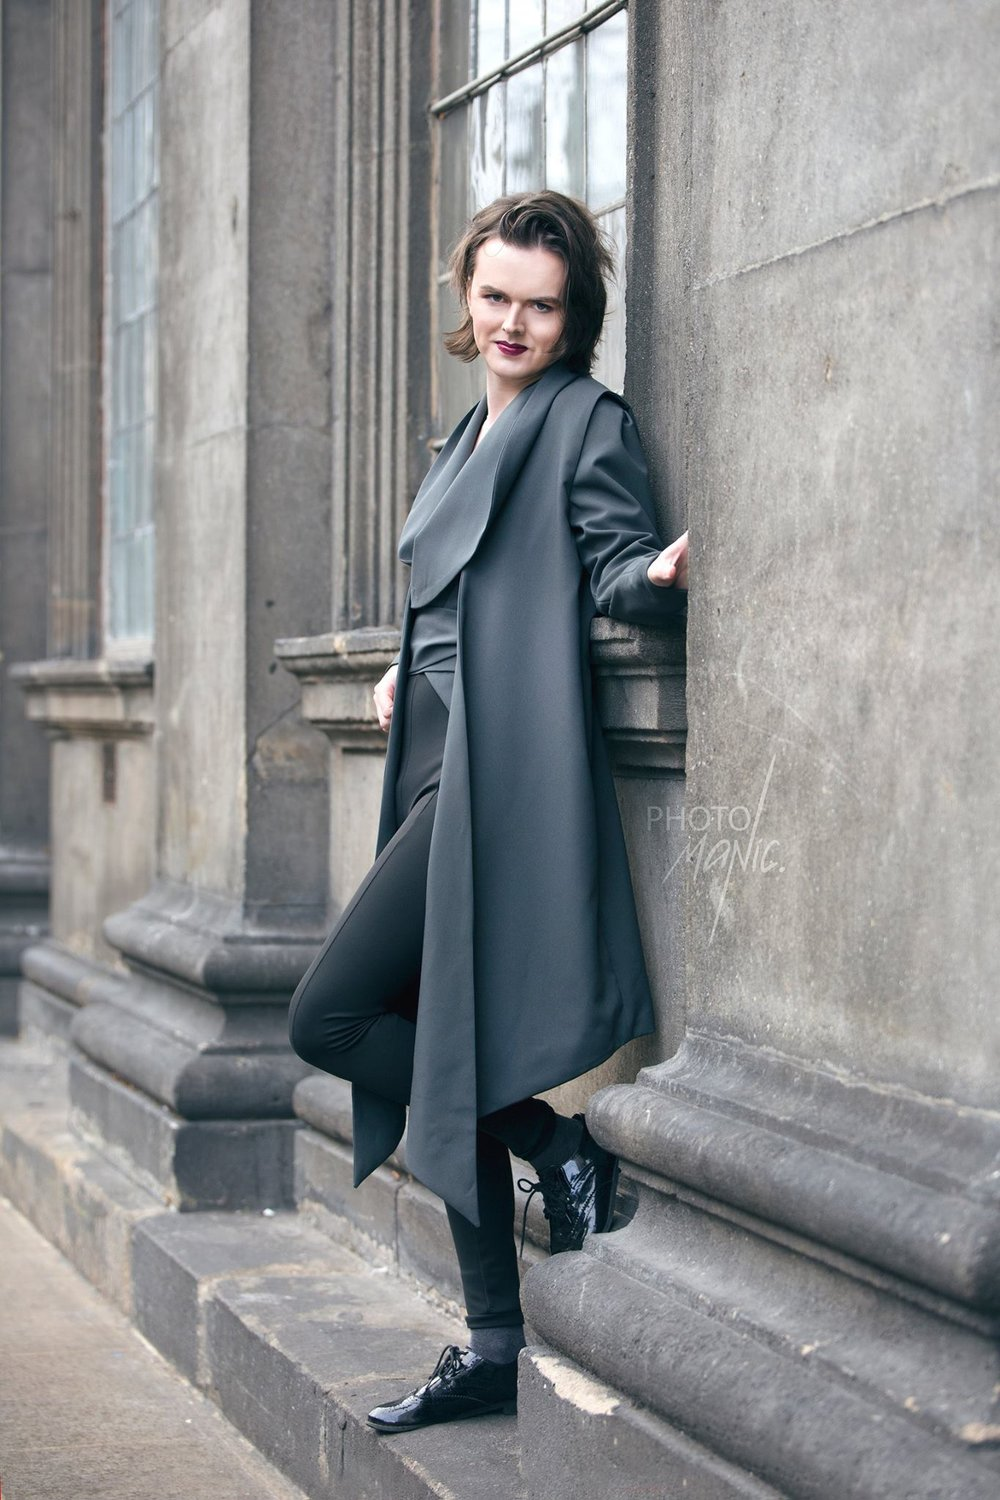 zaramia-ava-zaramiaava-leeds-fashion-designer-ethical-sustainable-black-jacket-drape-aya-dress-grey-5.jpg